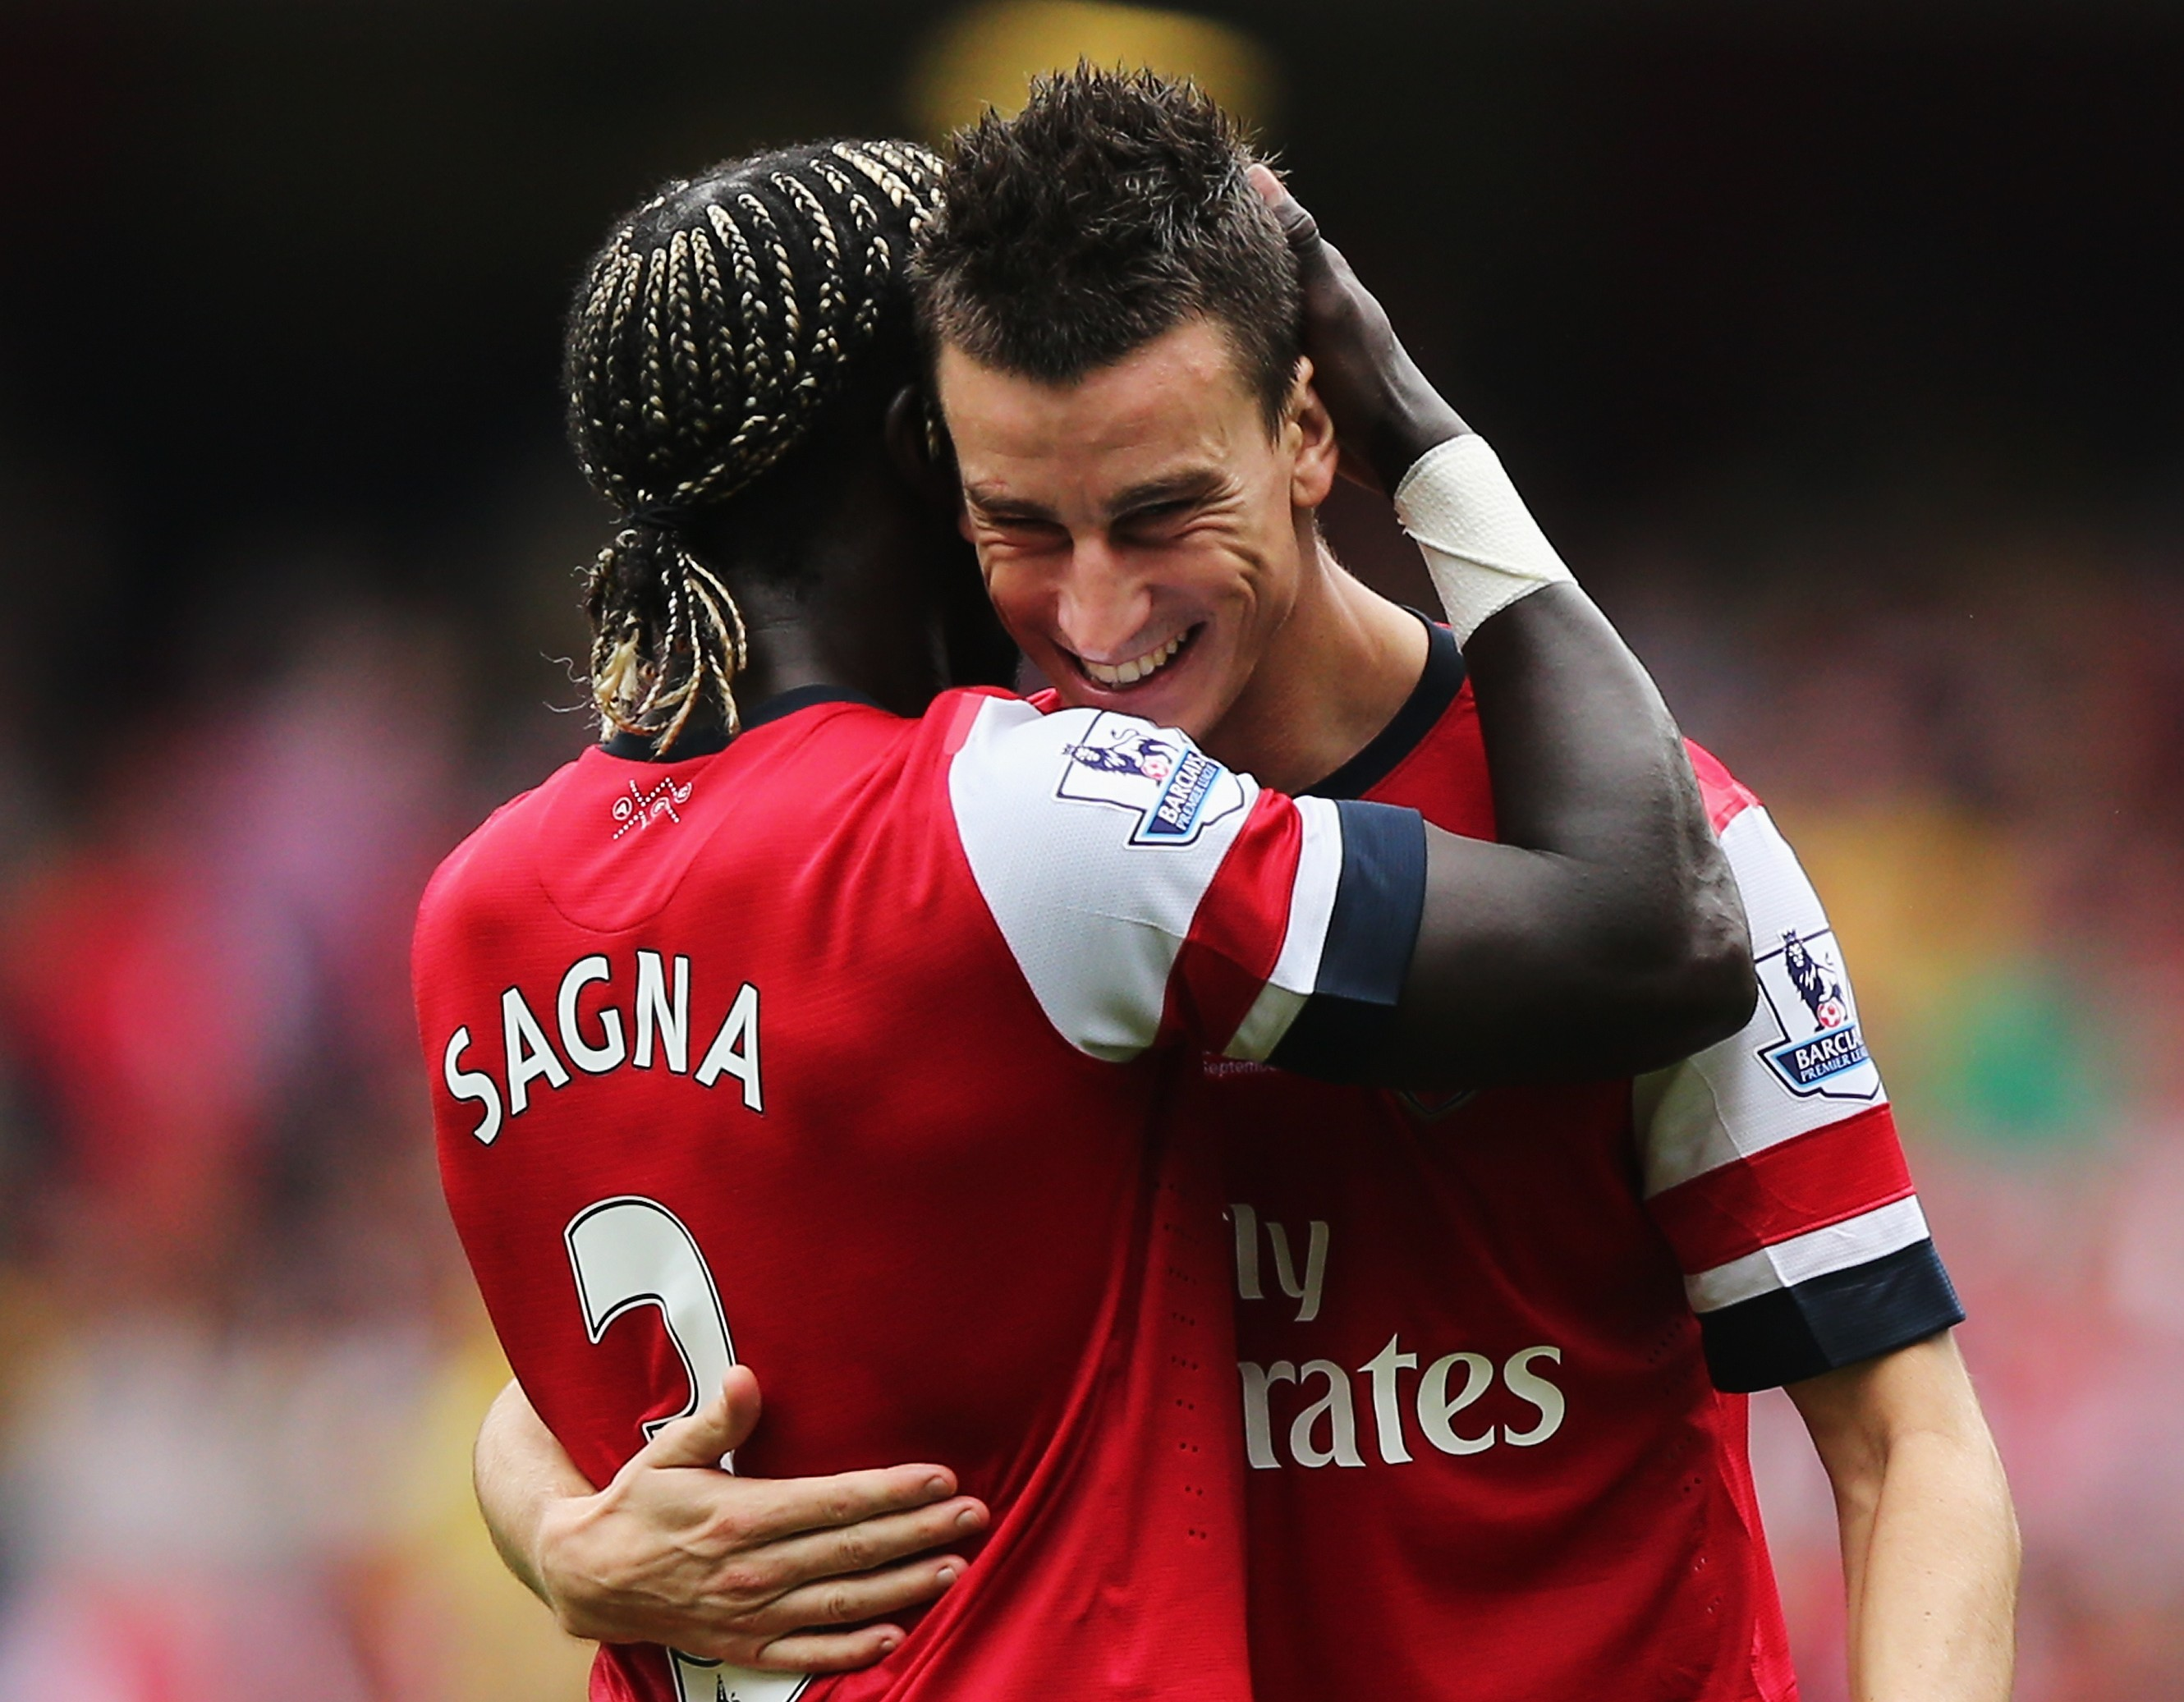 Laurent Koscielny and Bacary Sagna tipped to quit Arsenal this summer